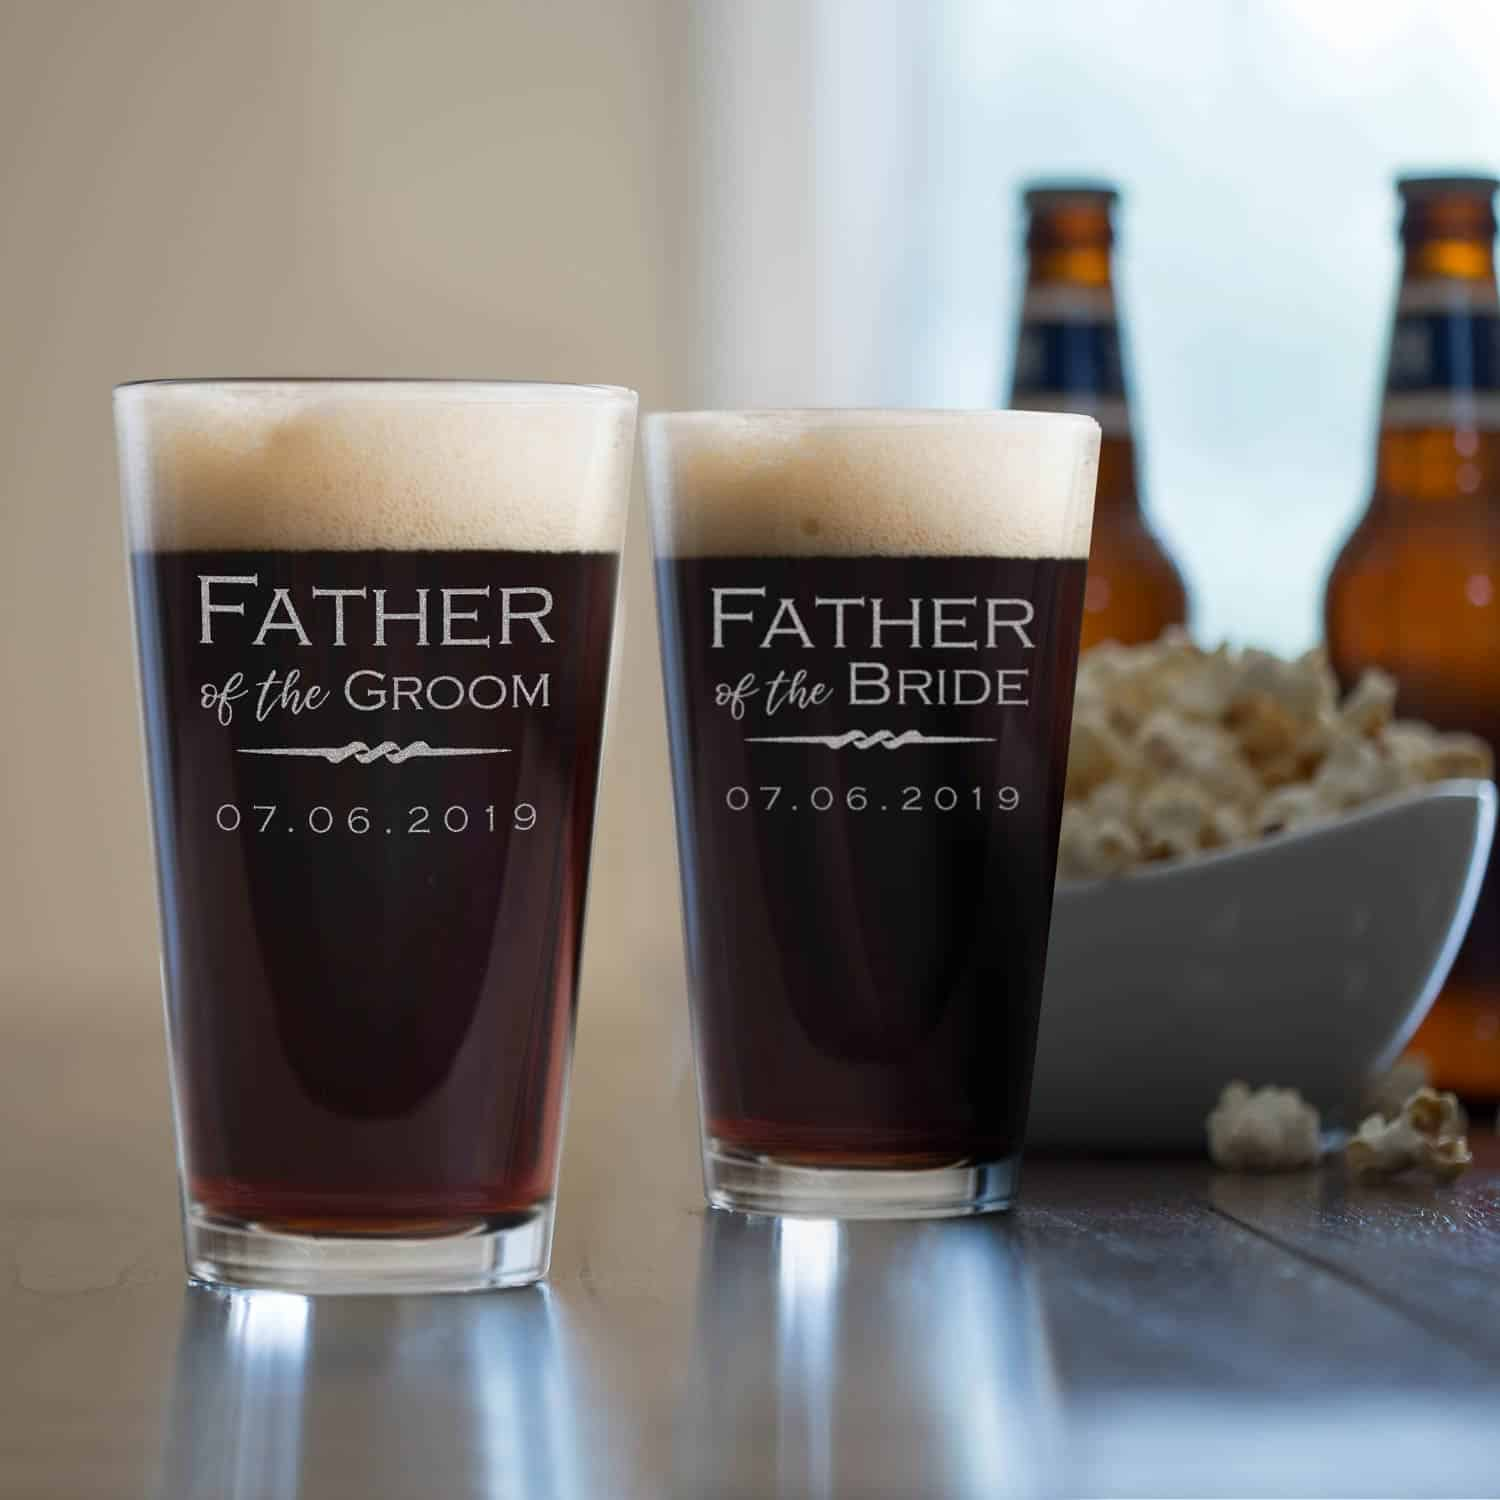 Father of the bride and groom personalized pint glass